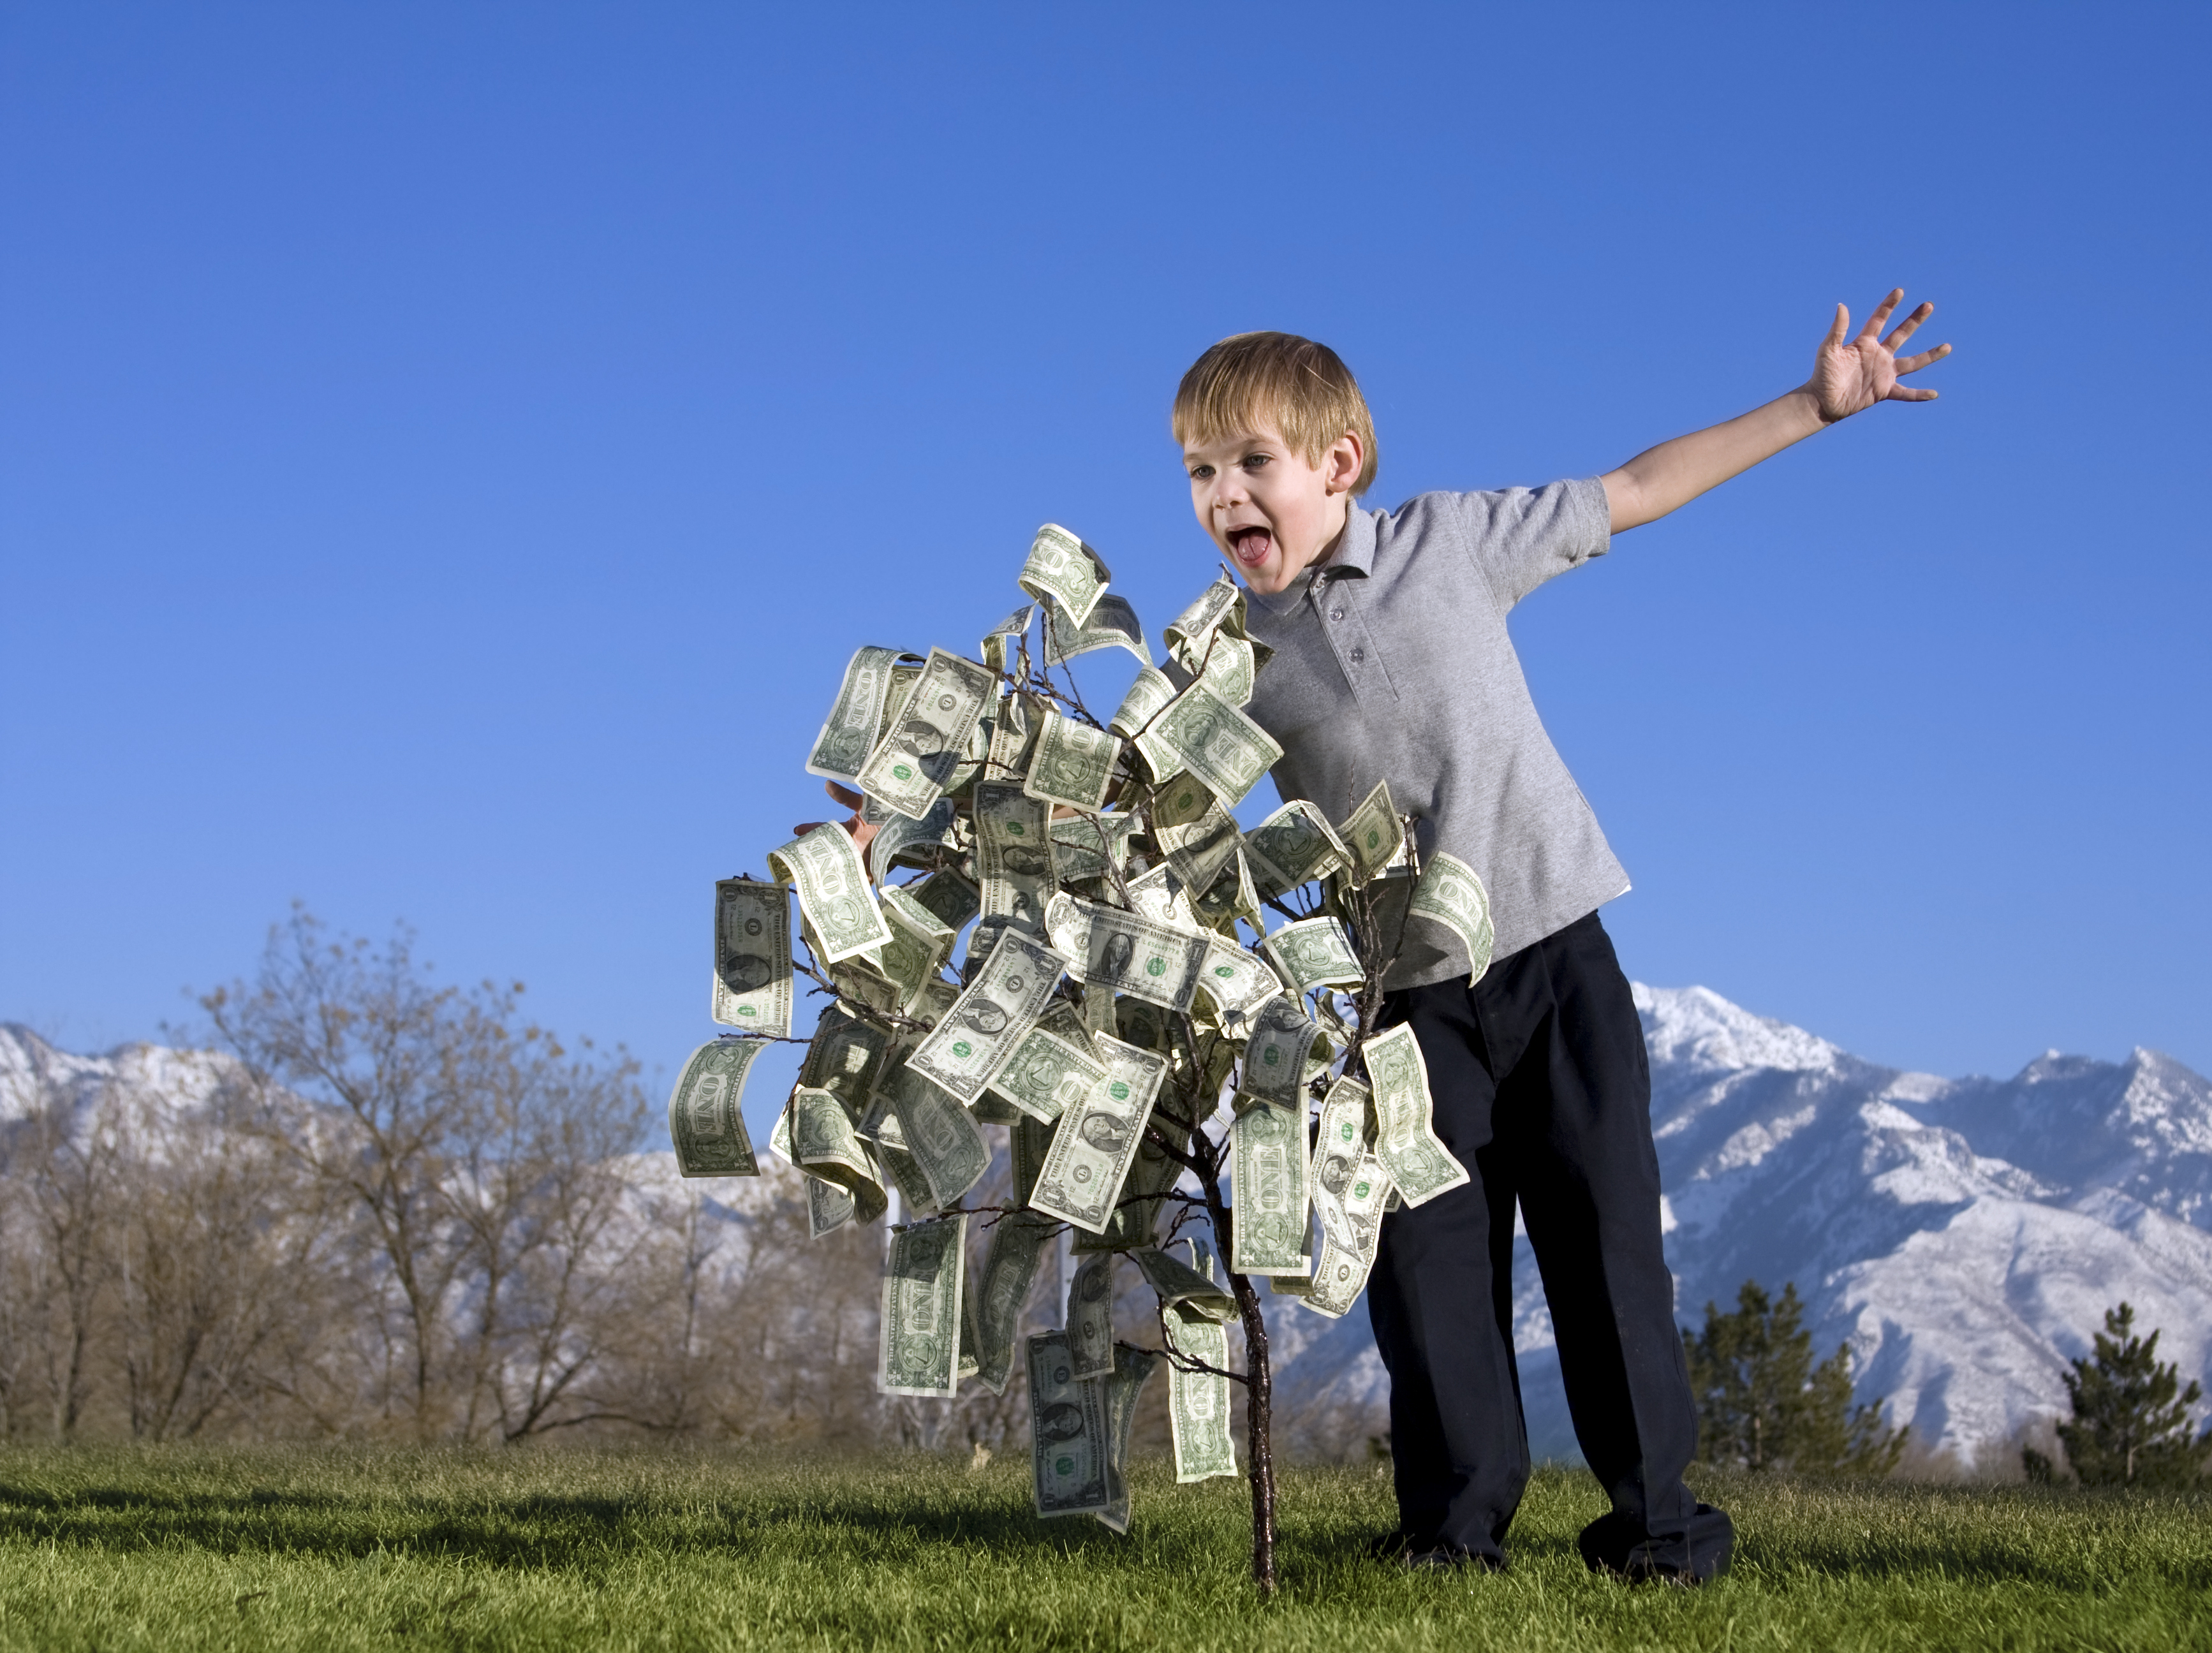 This kid sure noticed the money in the tree! [Has anyone ever wondered how bizarre a stock photo shoot must be?] Image from Thinkstock